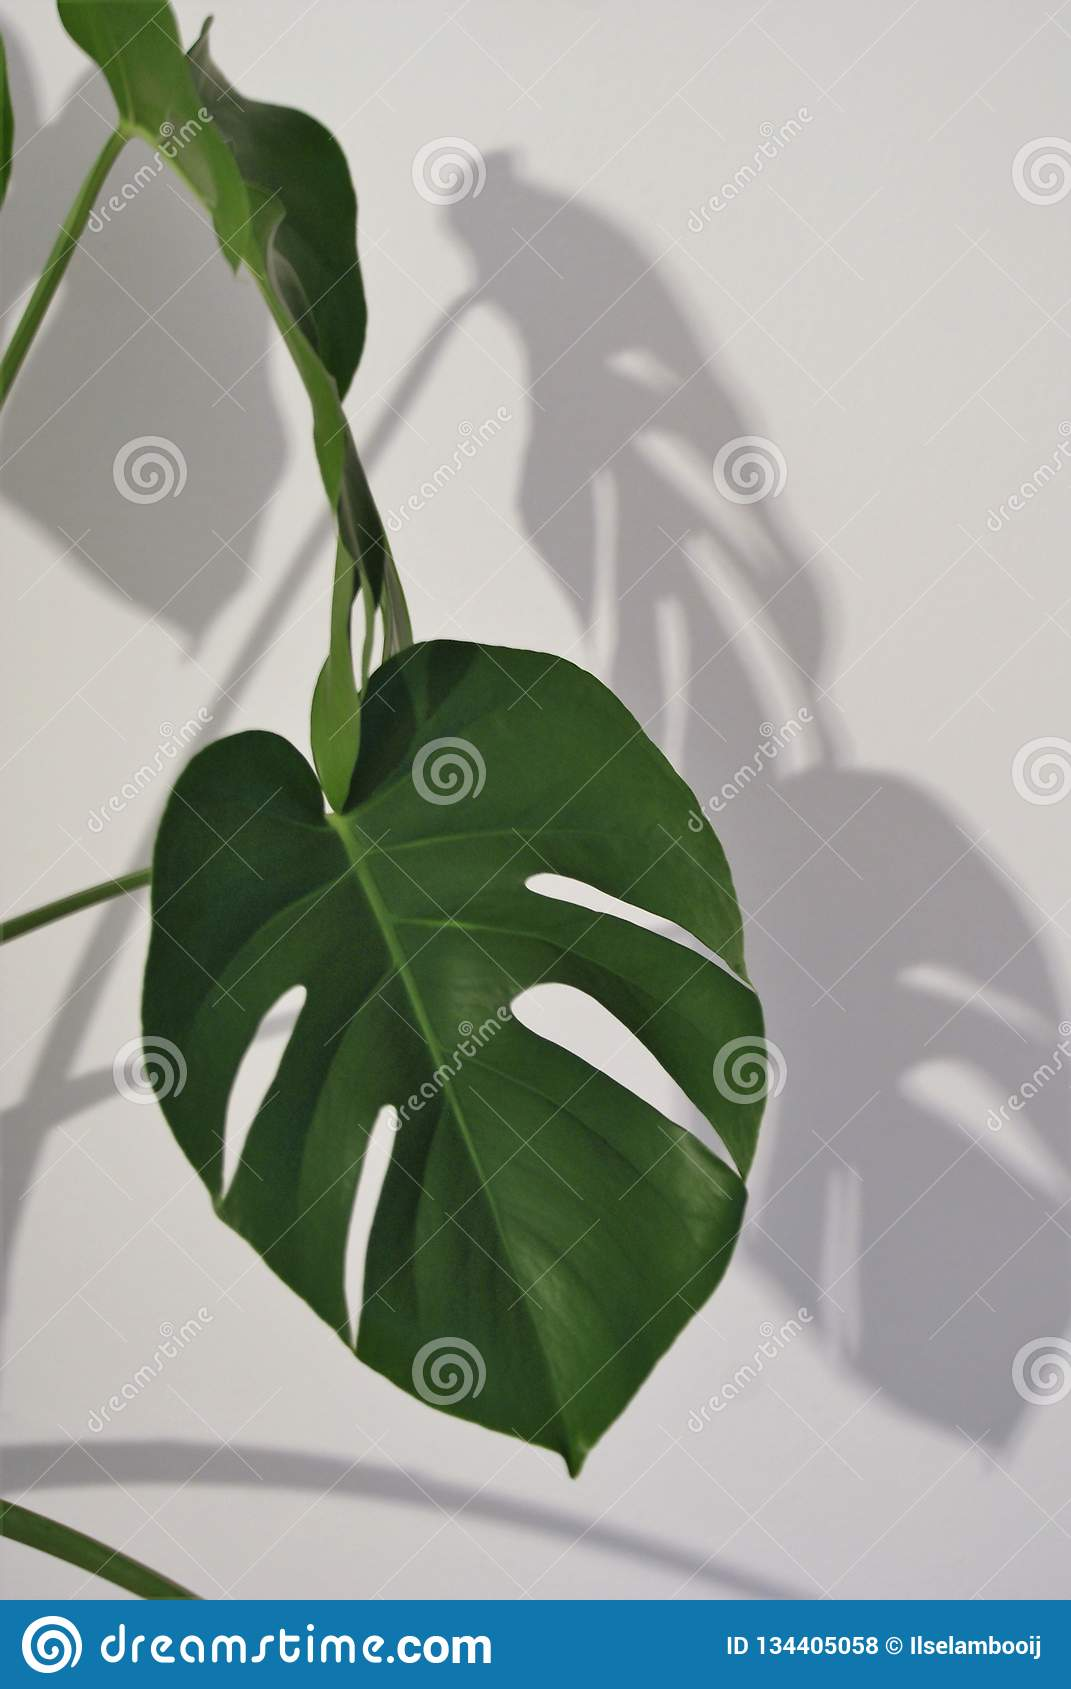 Pleasant Big Leaf On A Green Houseplant Stock Photo Image Of Green Download Free Architecture Designs Scobabritishbridgeorg